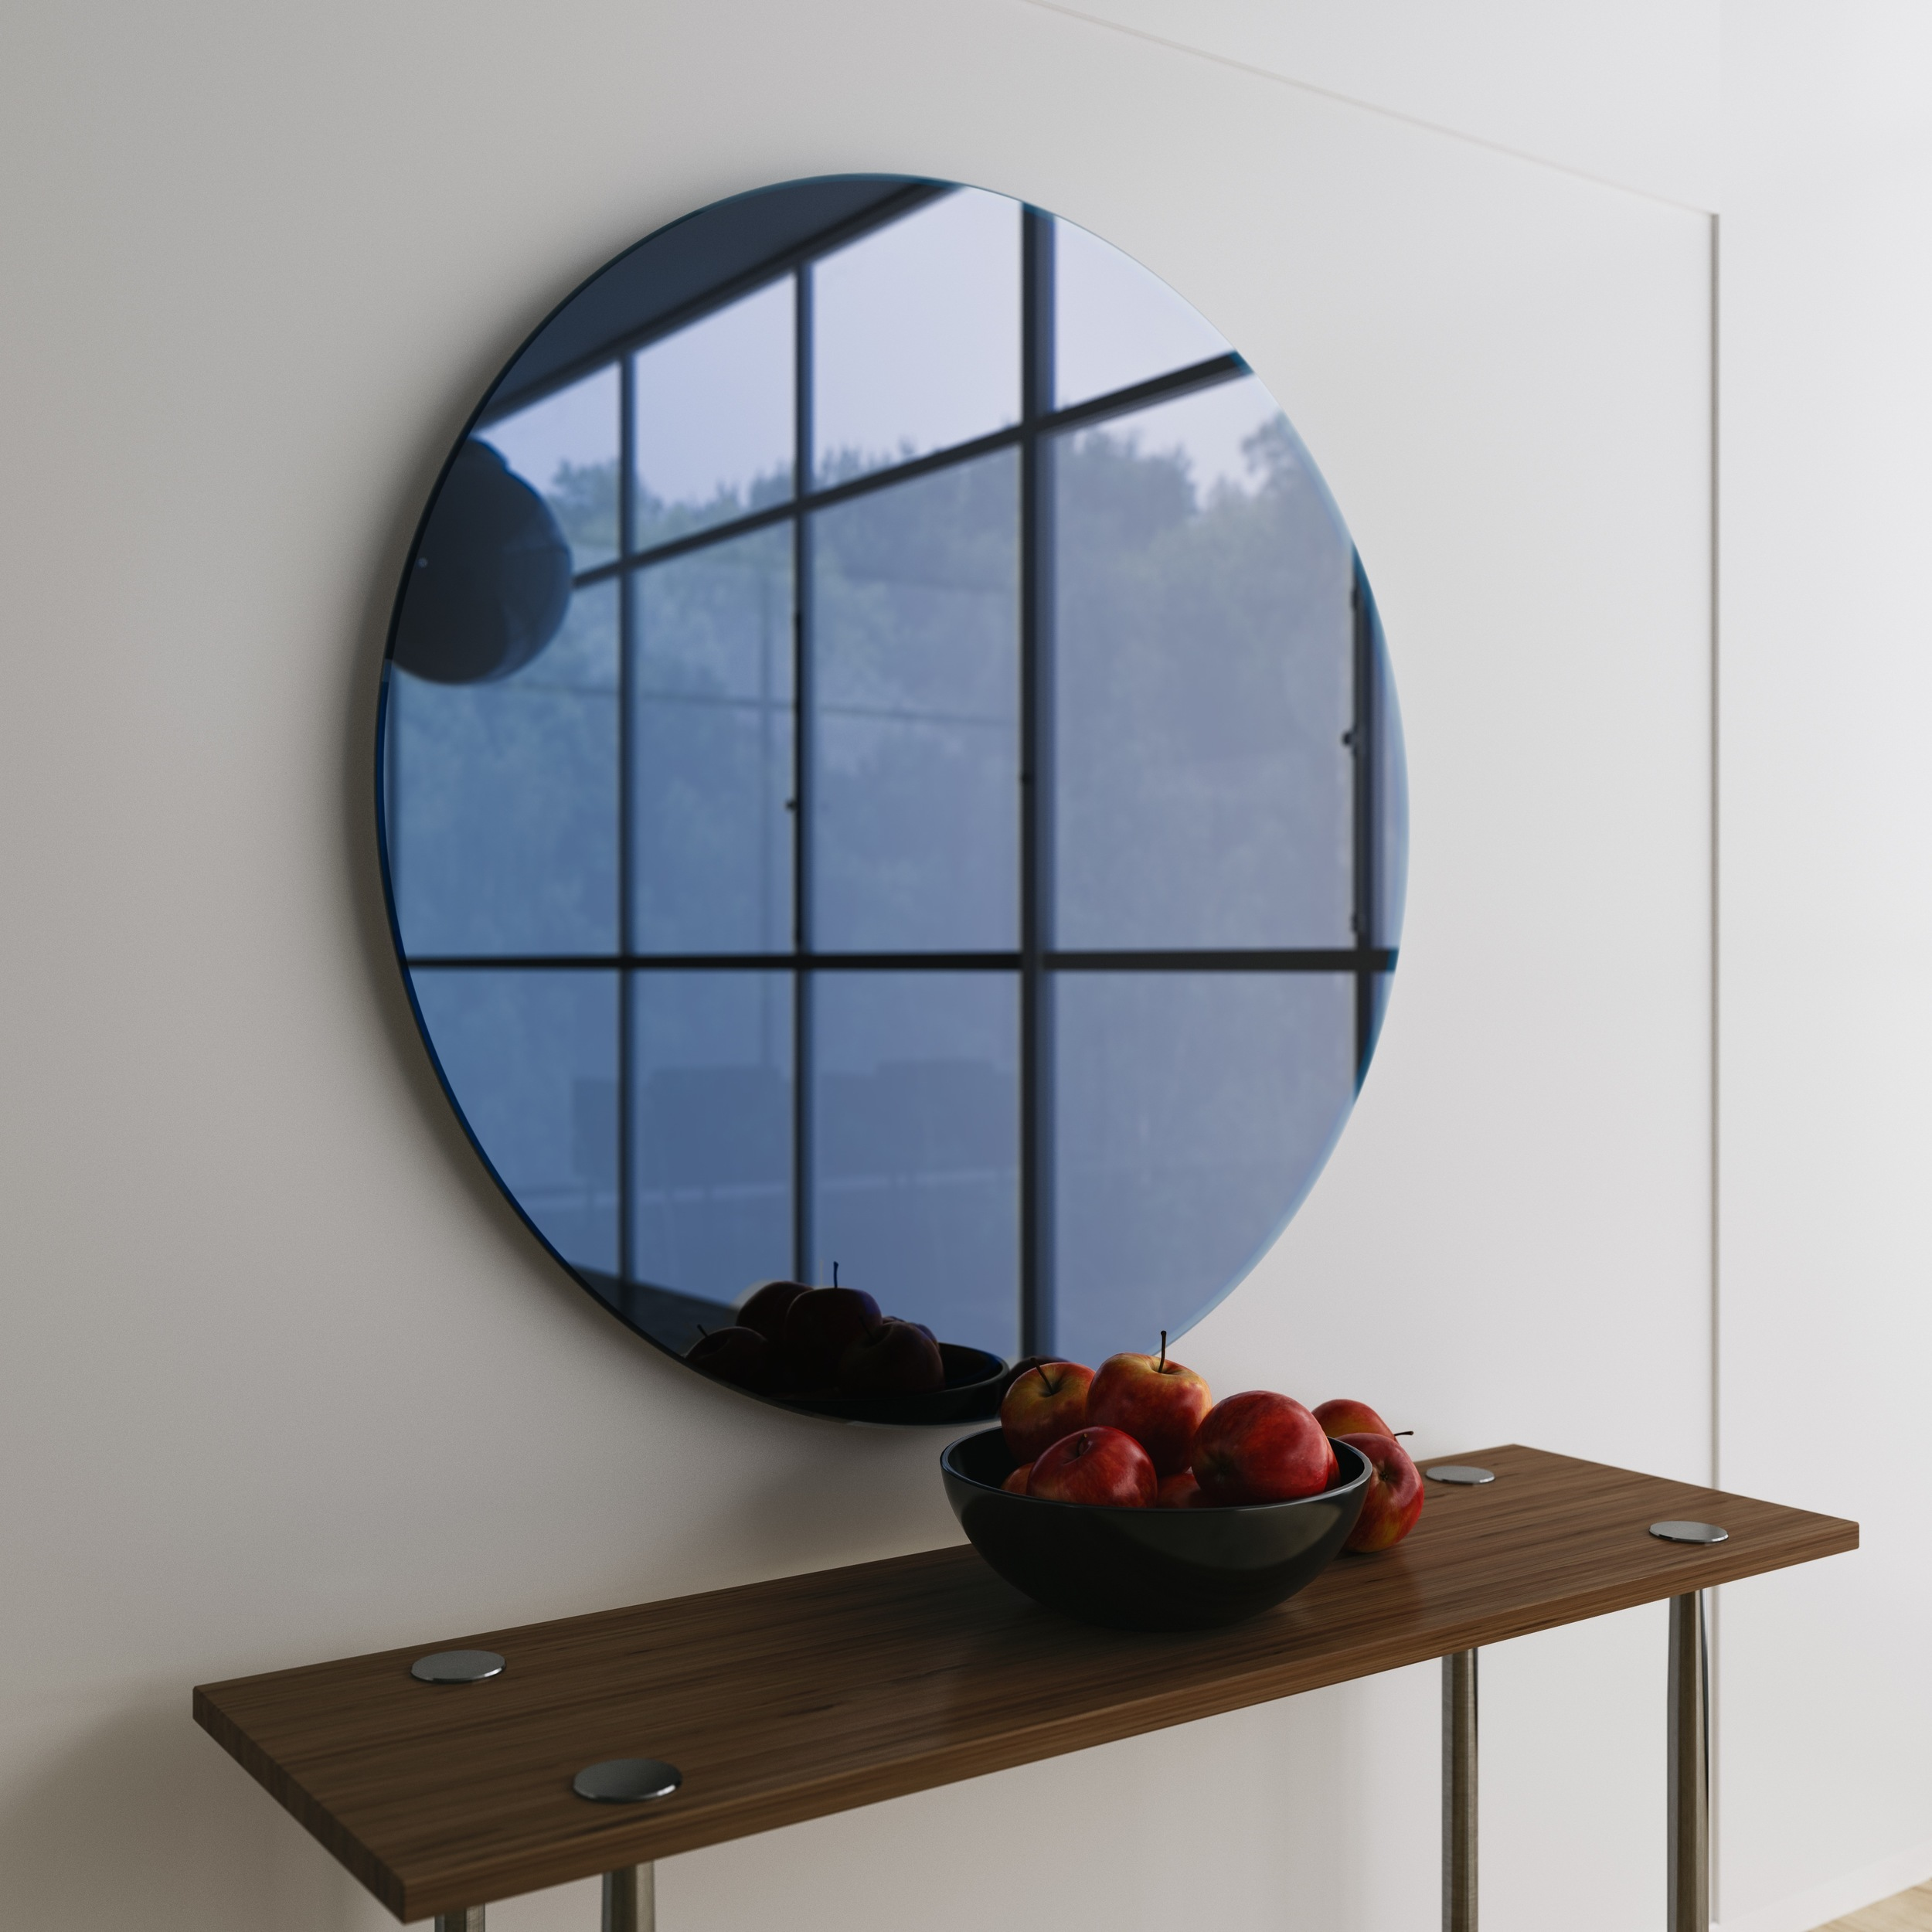 Blue Hanging WallMirror. Photograph taken atprivate residence in LA.